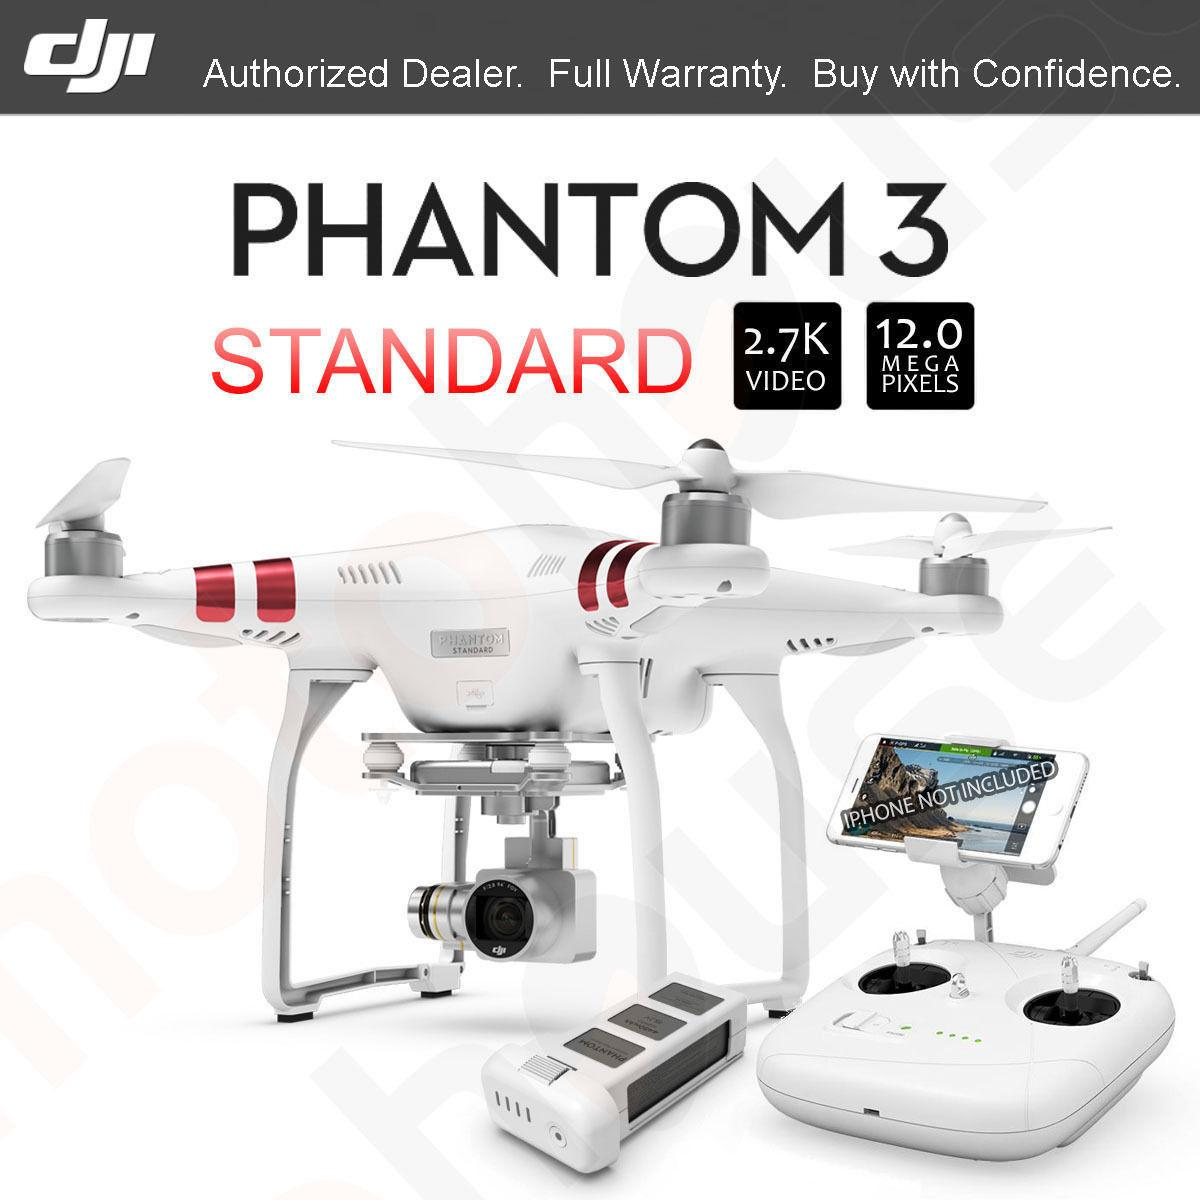 drone with hd camera with 374481709 on 374481709 furthermore A Review Of The Dji T600 1 Quadcopter With 4k Video Camera With Dual Controllers furthermore Racing Drones For Sale in addition Dji Mavic Pro Foldable Gps Drone Rtf in addition Tarot 810 Rtf  posite.